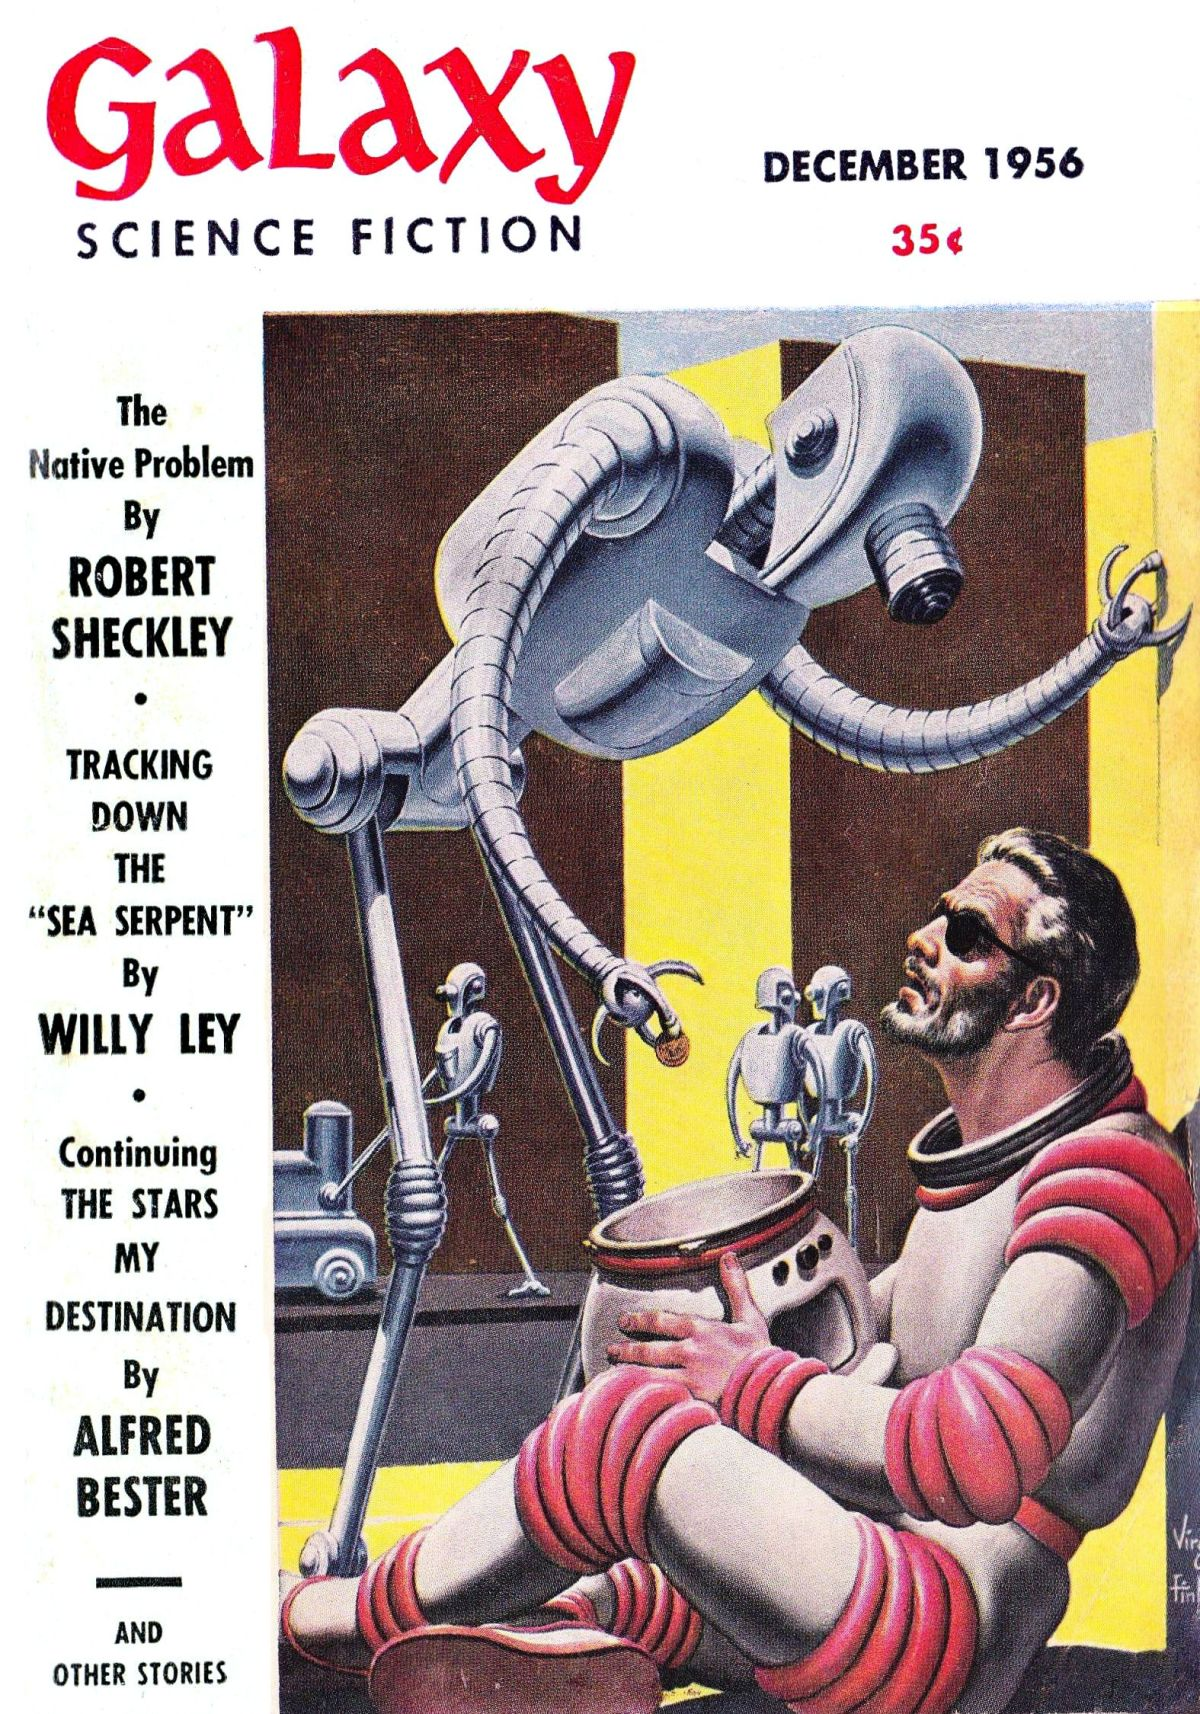 Unraveling a Loose Thread of History Found in a 1956 Issue of Galaxy Science Fiction